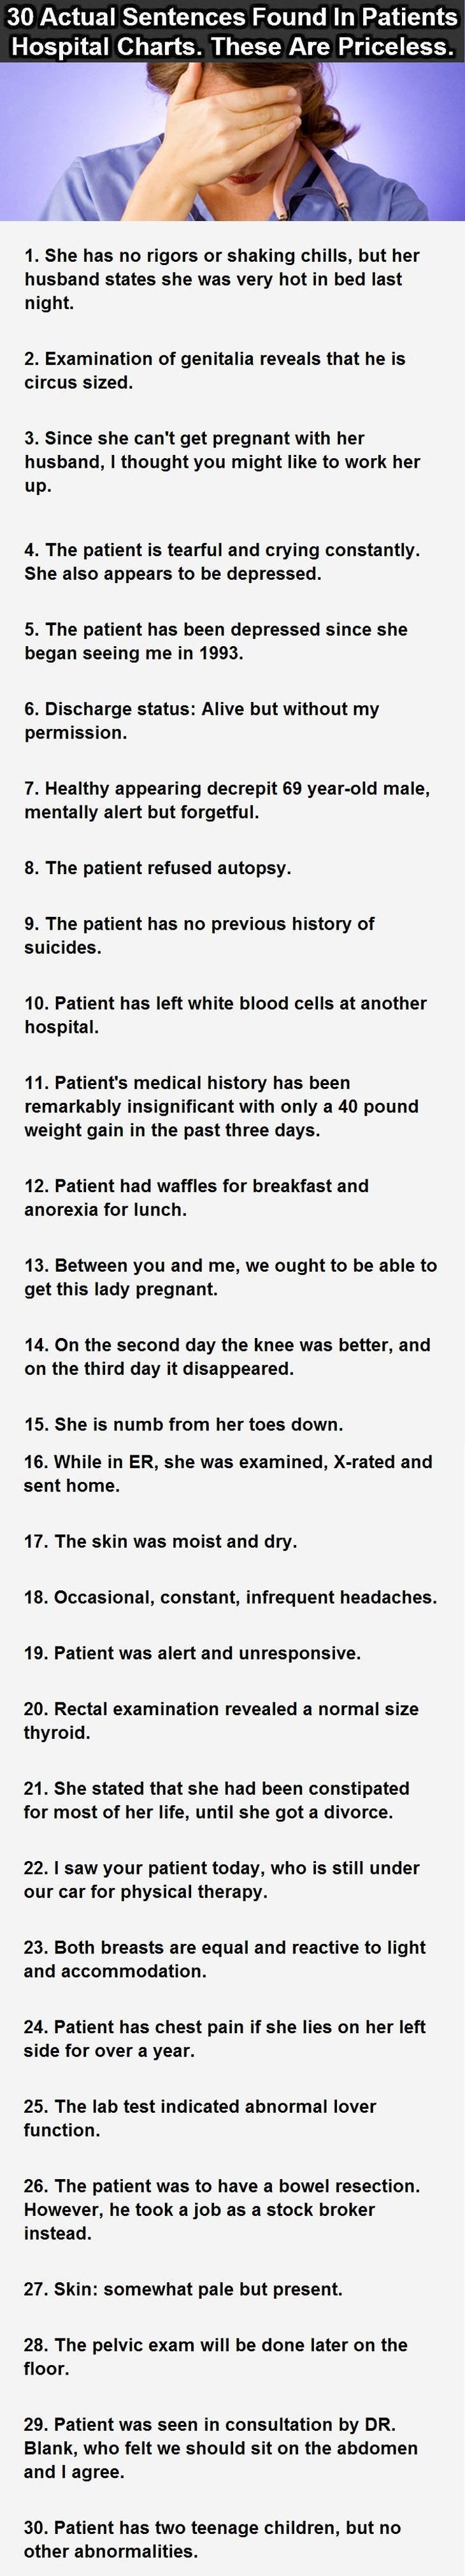 The Best Funny Office Jokes Ideas On Pinterest Brut Gold - 30 dumbest sentences found in patients hospital charts